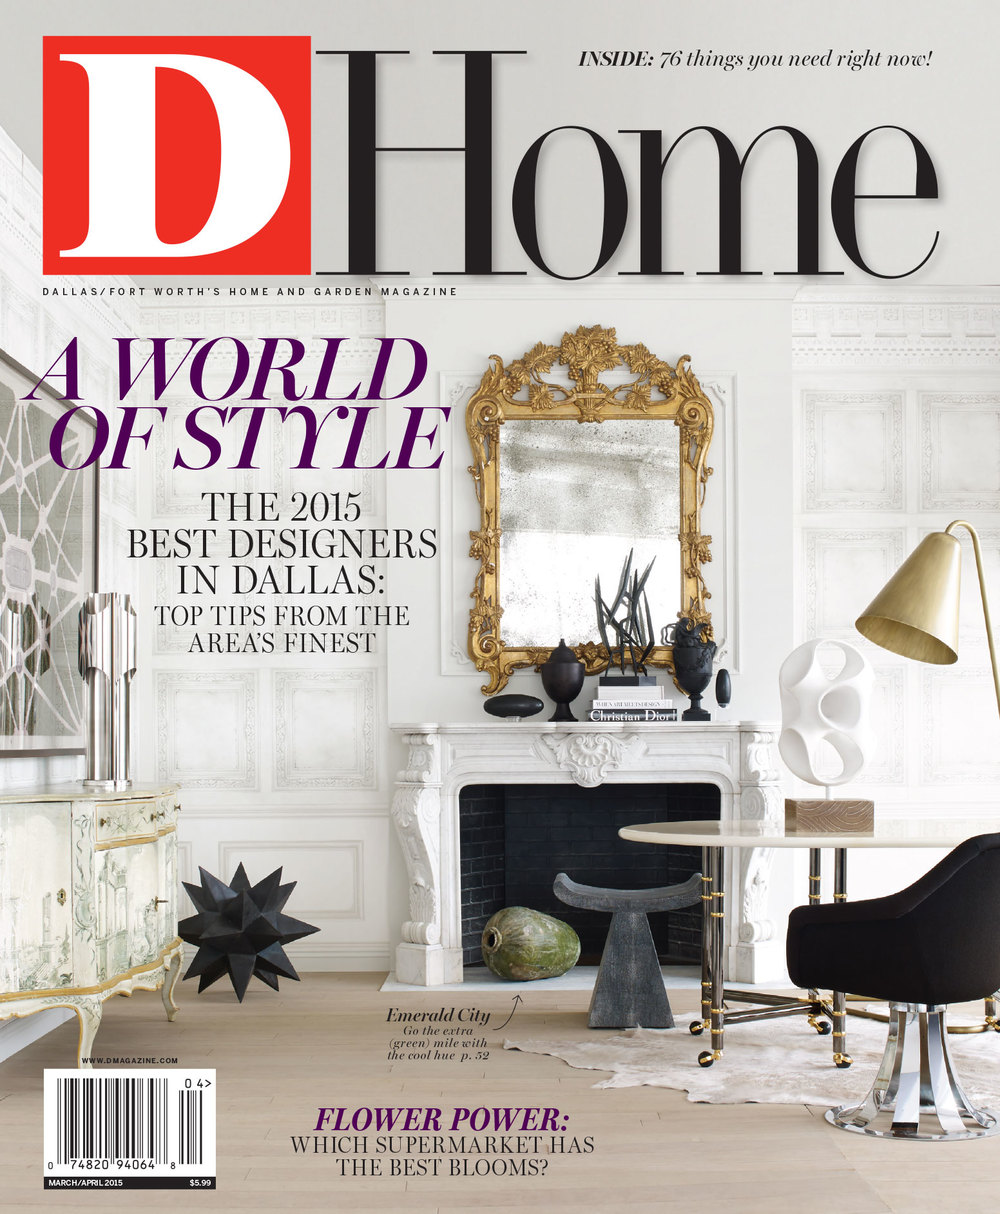 Dhome Best 2015 1